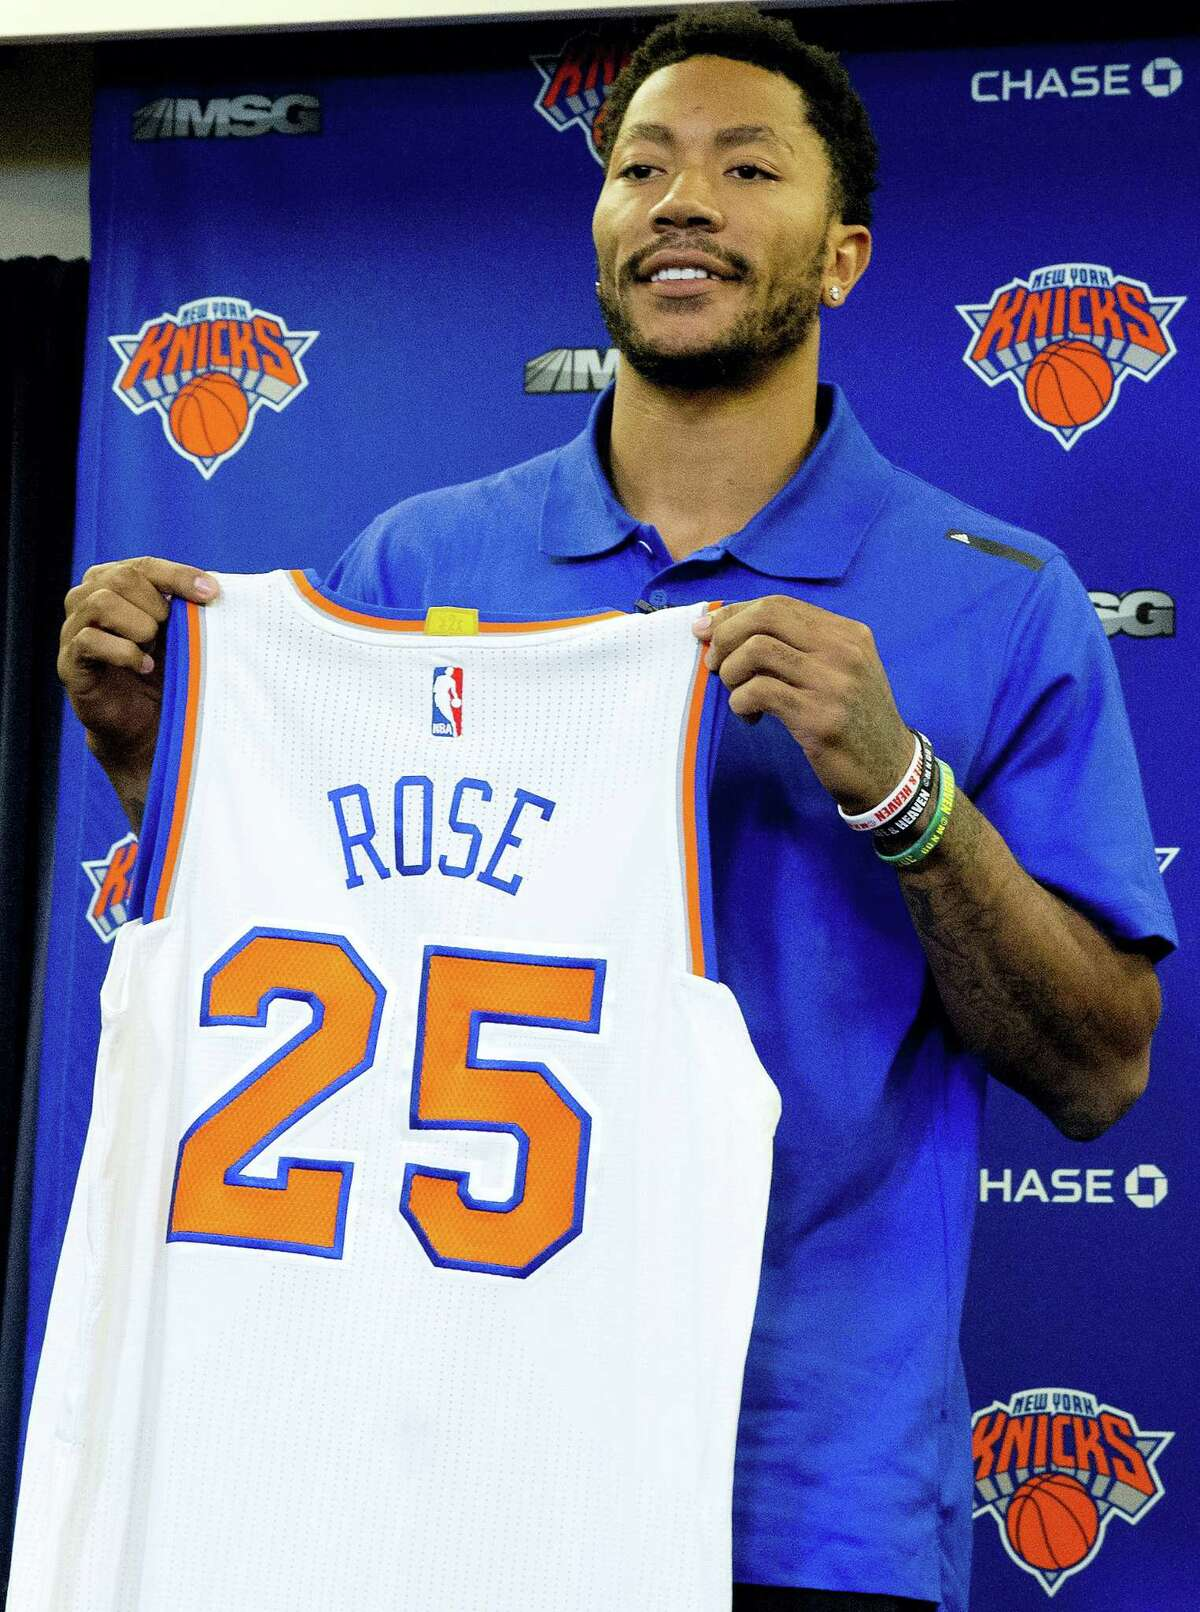 Derrick Rose poses for photographers with his Knicks jersey during a news conference at Madison Square Garden on Friday.